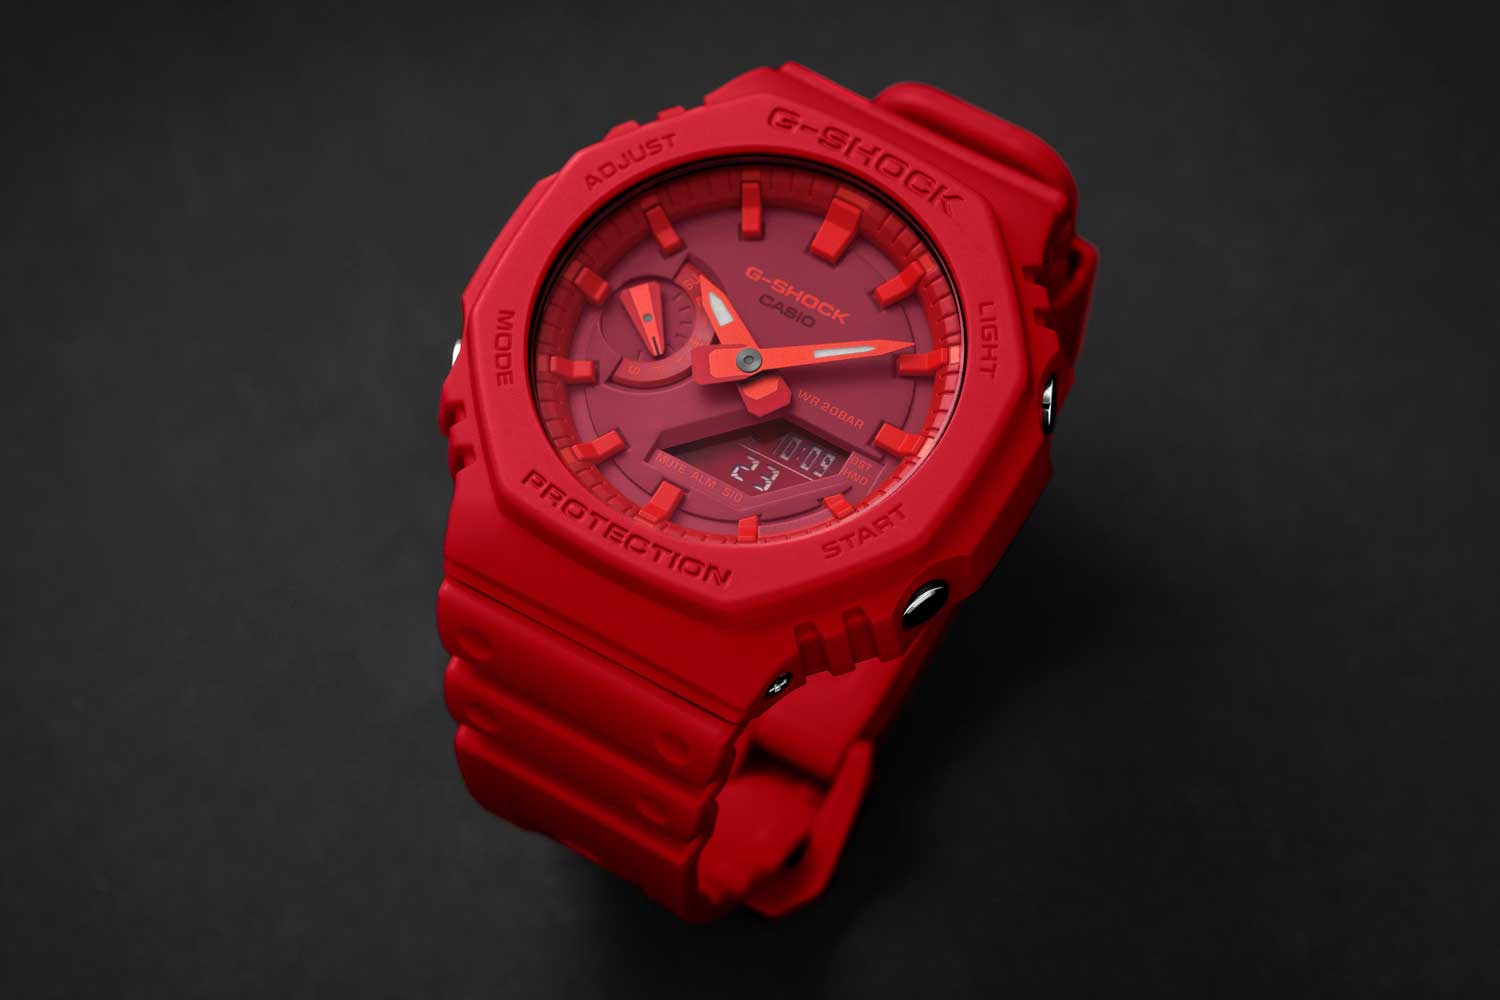 The Casio G-Shock GA-2100 in all red (Image © Revolution)